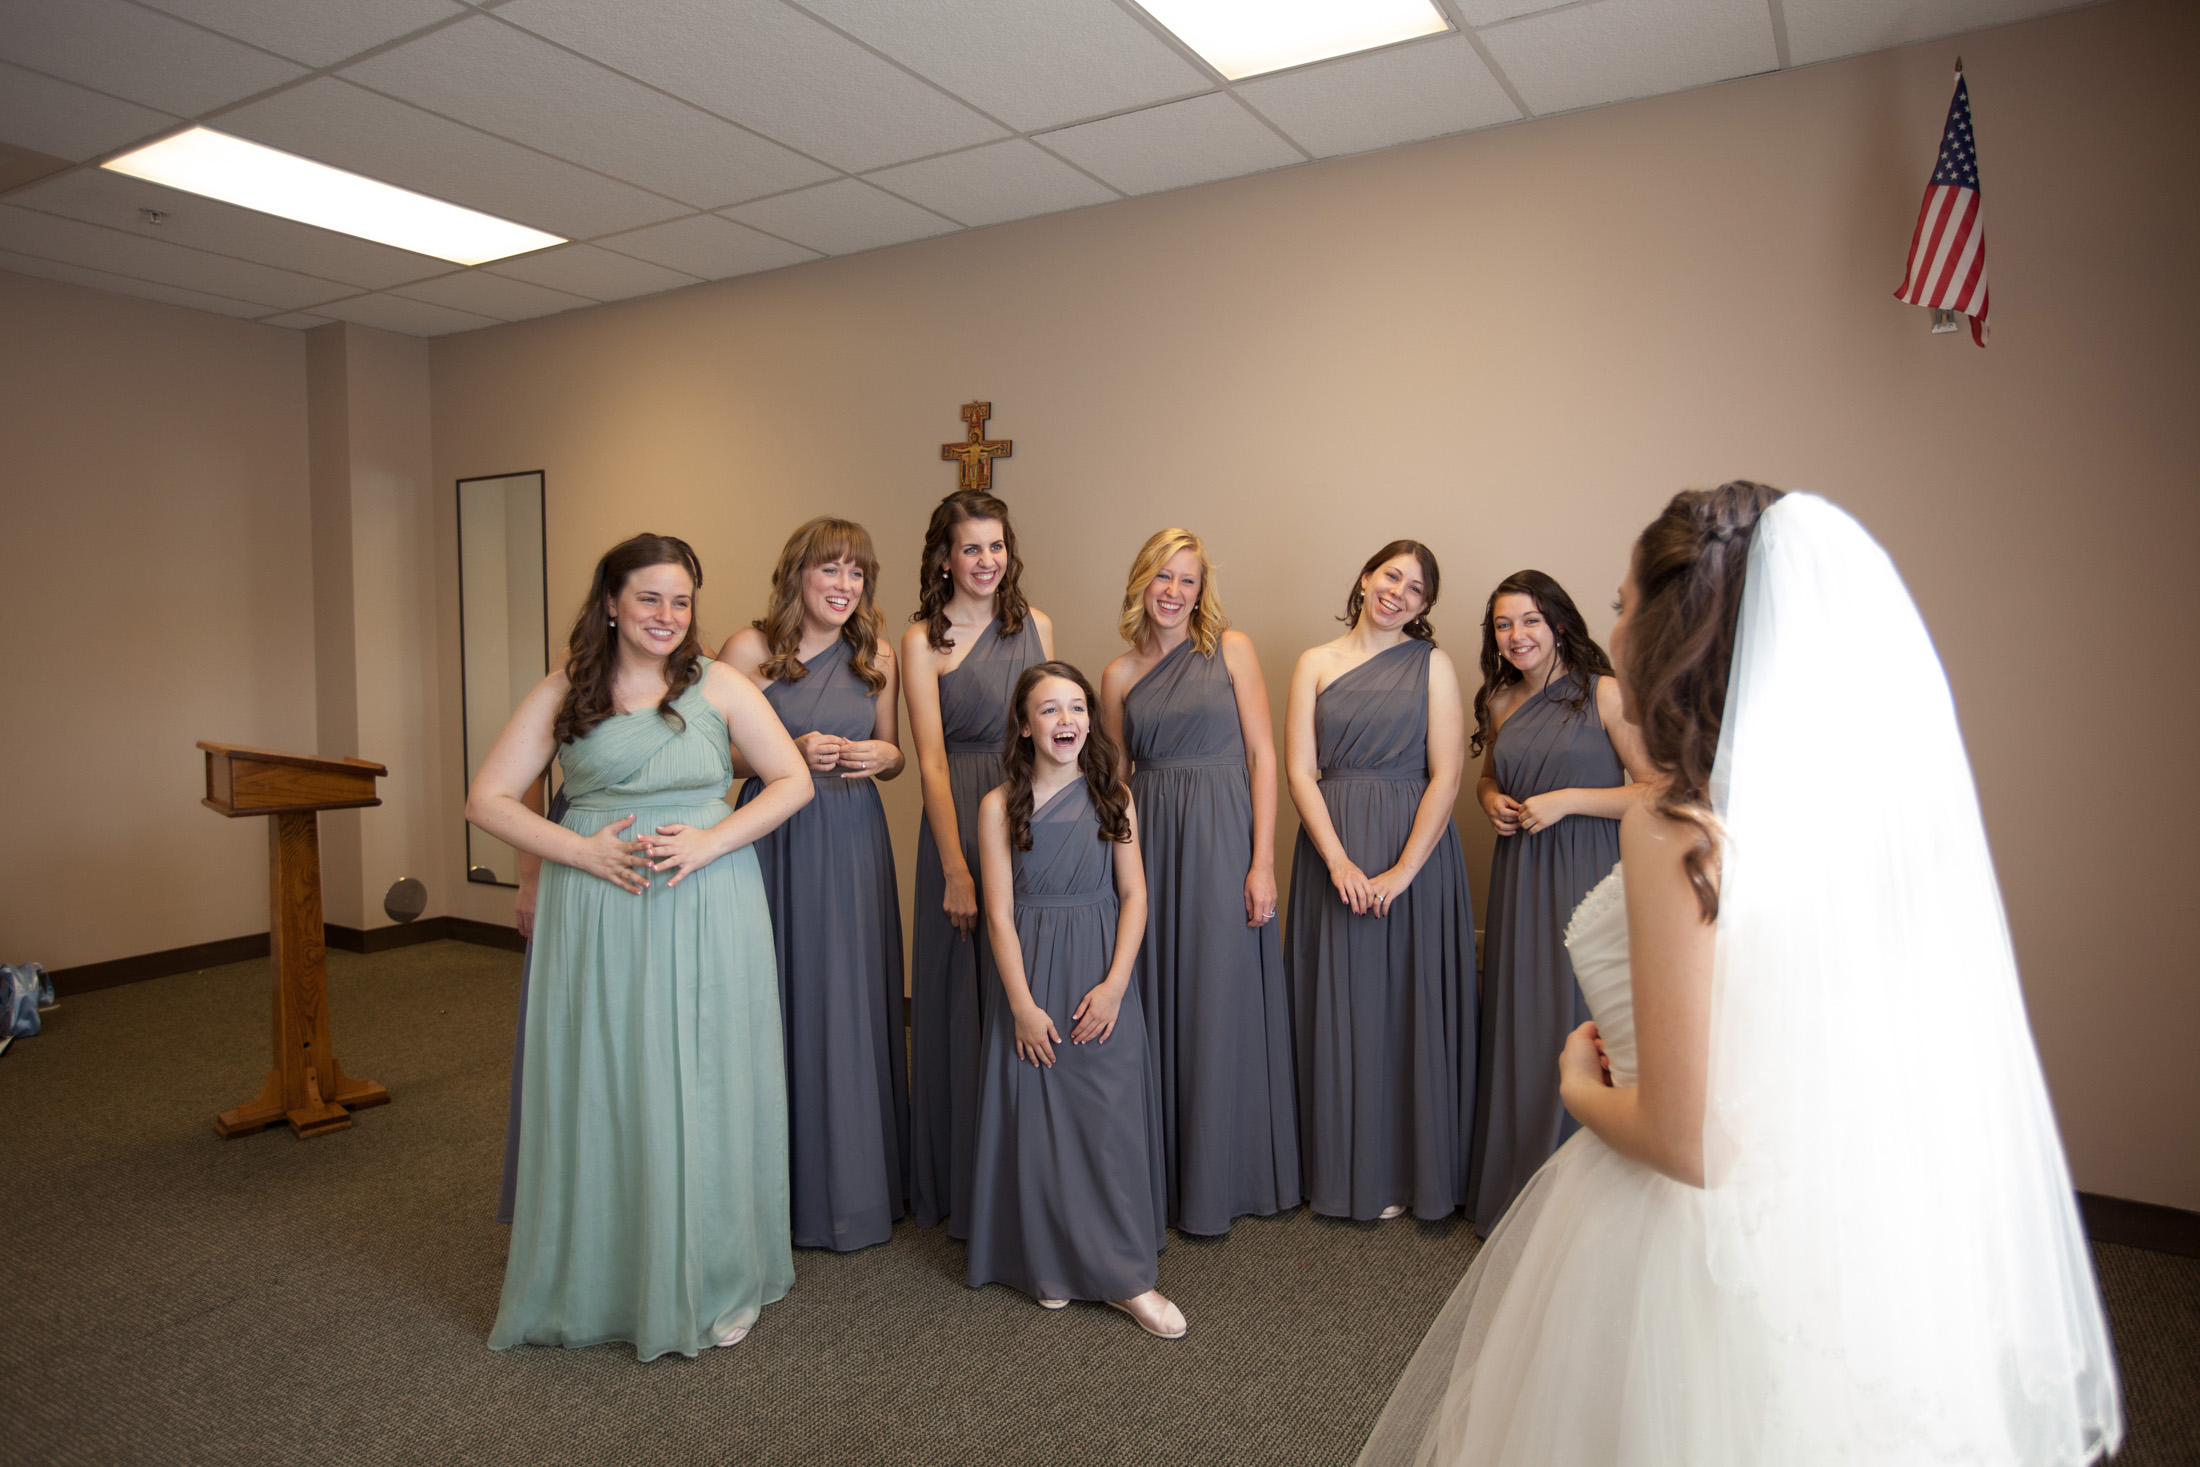 UofM_weddings_hull_melanie_reyes_010